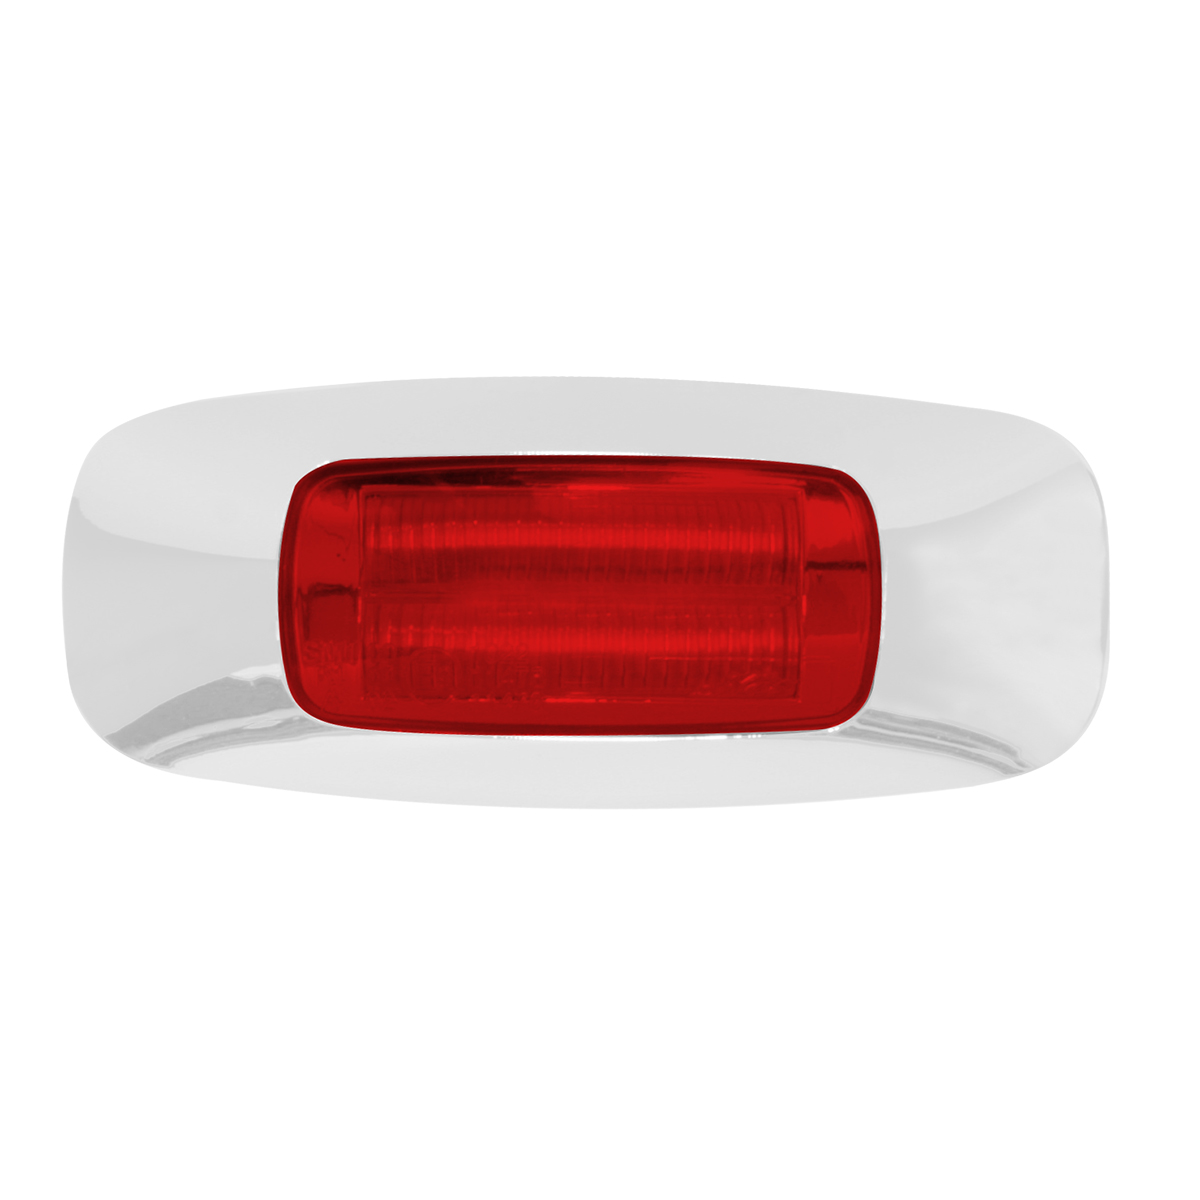 "74722 3-1/2"" Dual Function Rectangular Prime LED Marker Light"